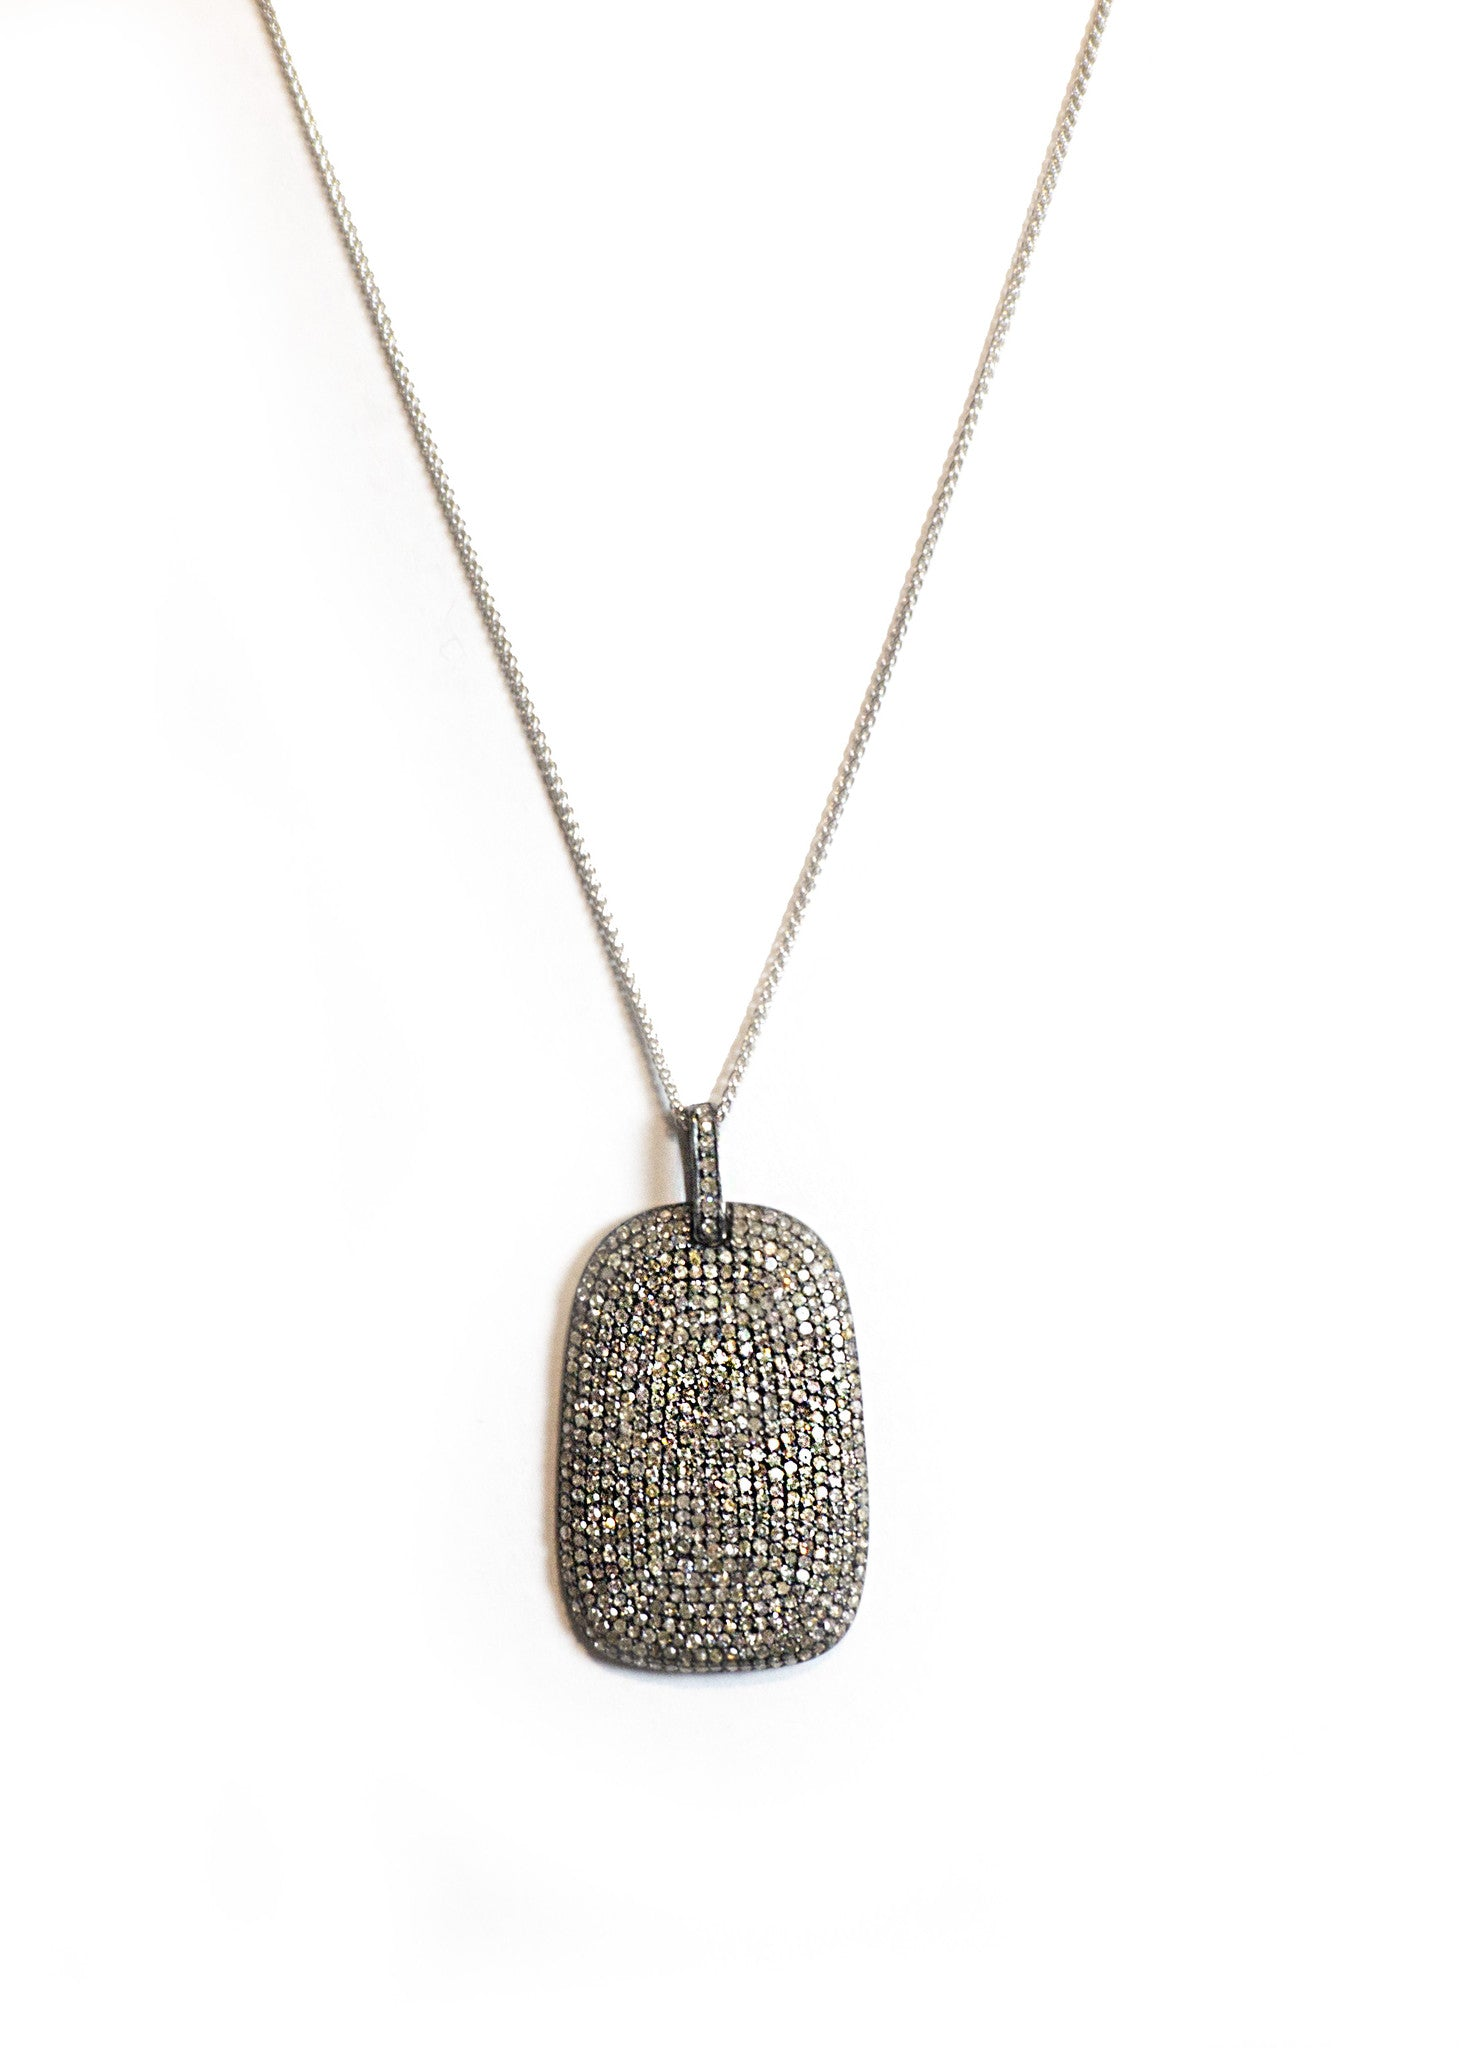 Lera Jewels pave diamond dog tag necklace 14k white gold